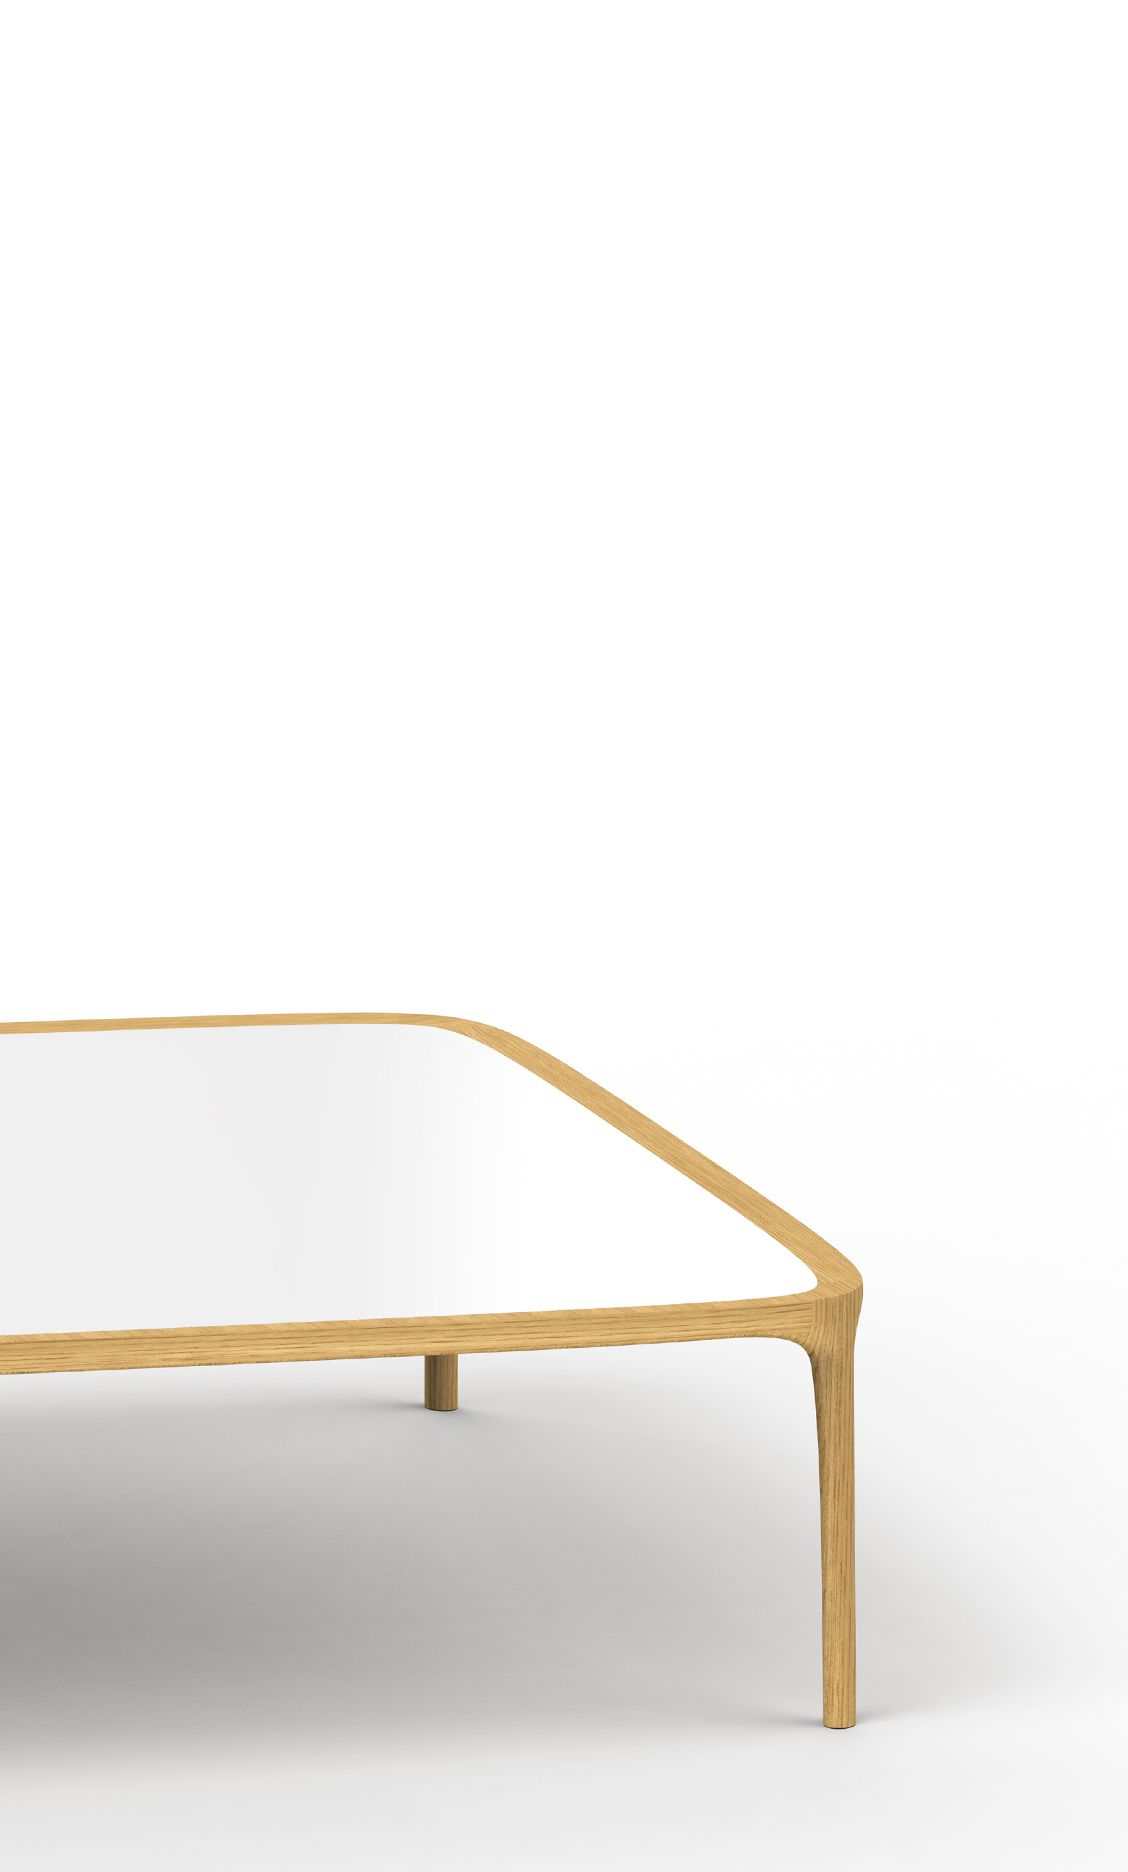 Tippo Occasional Table Design By Crouscalogero For Thelos Contemporary Table Contemporary Table Design Contemporary Design